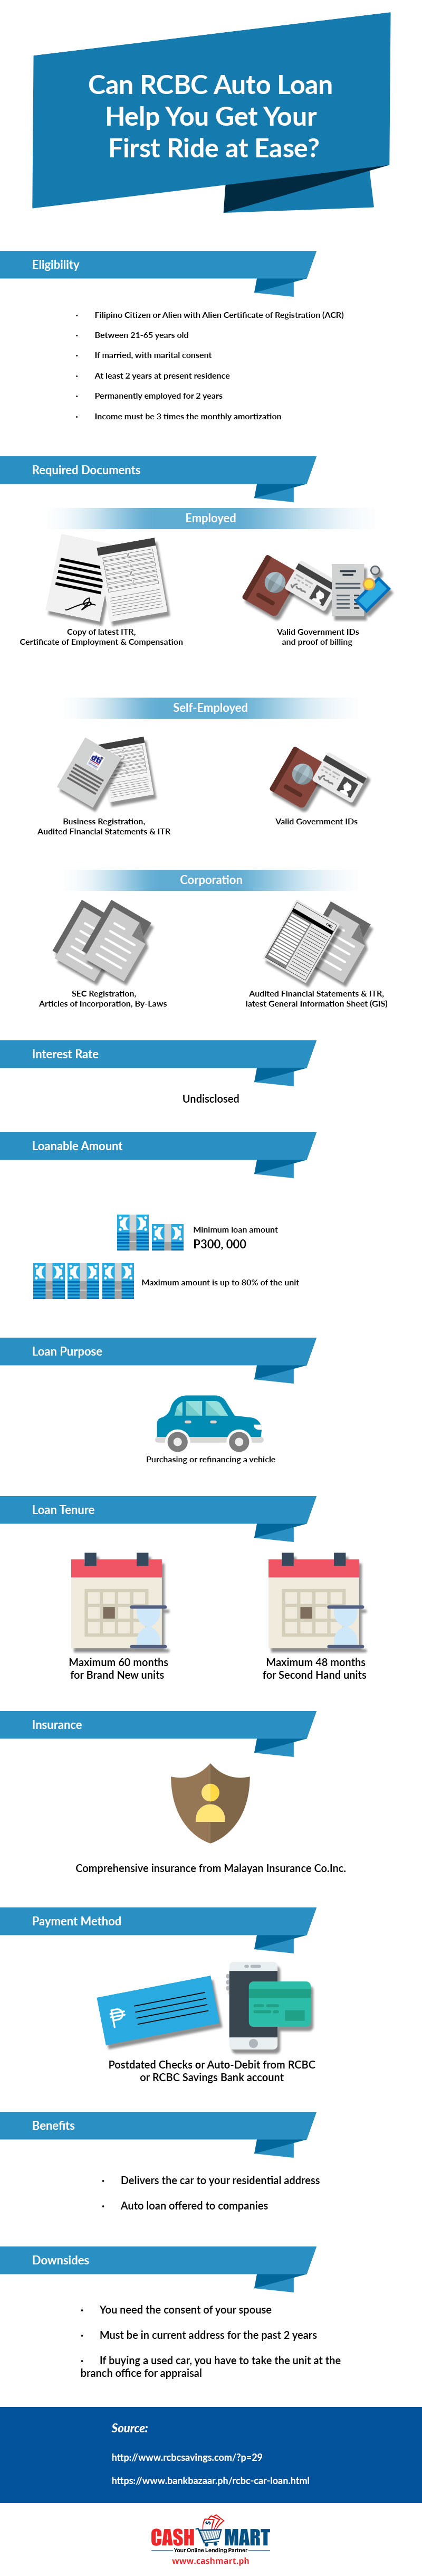 can-rcbc-auto-loan-help-you-get-your-first-ride-at-ease